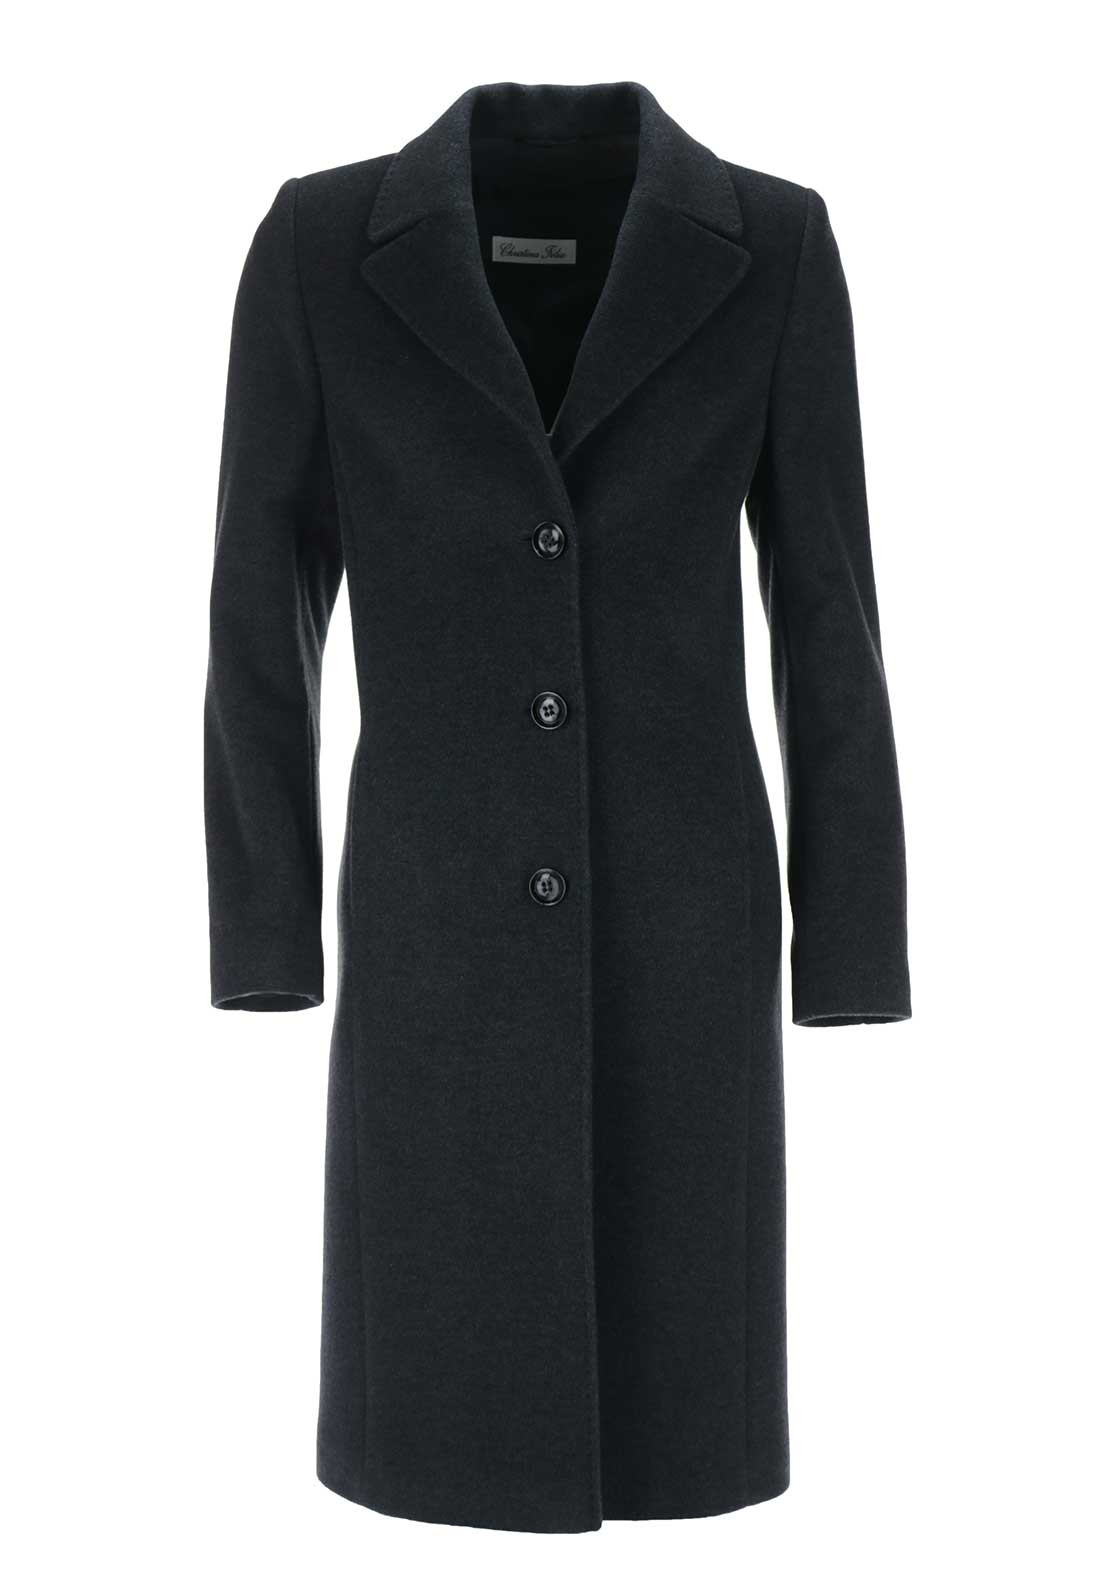 Christina Felix Wool & Cashmere Coat, Deep Grey